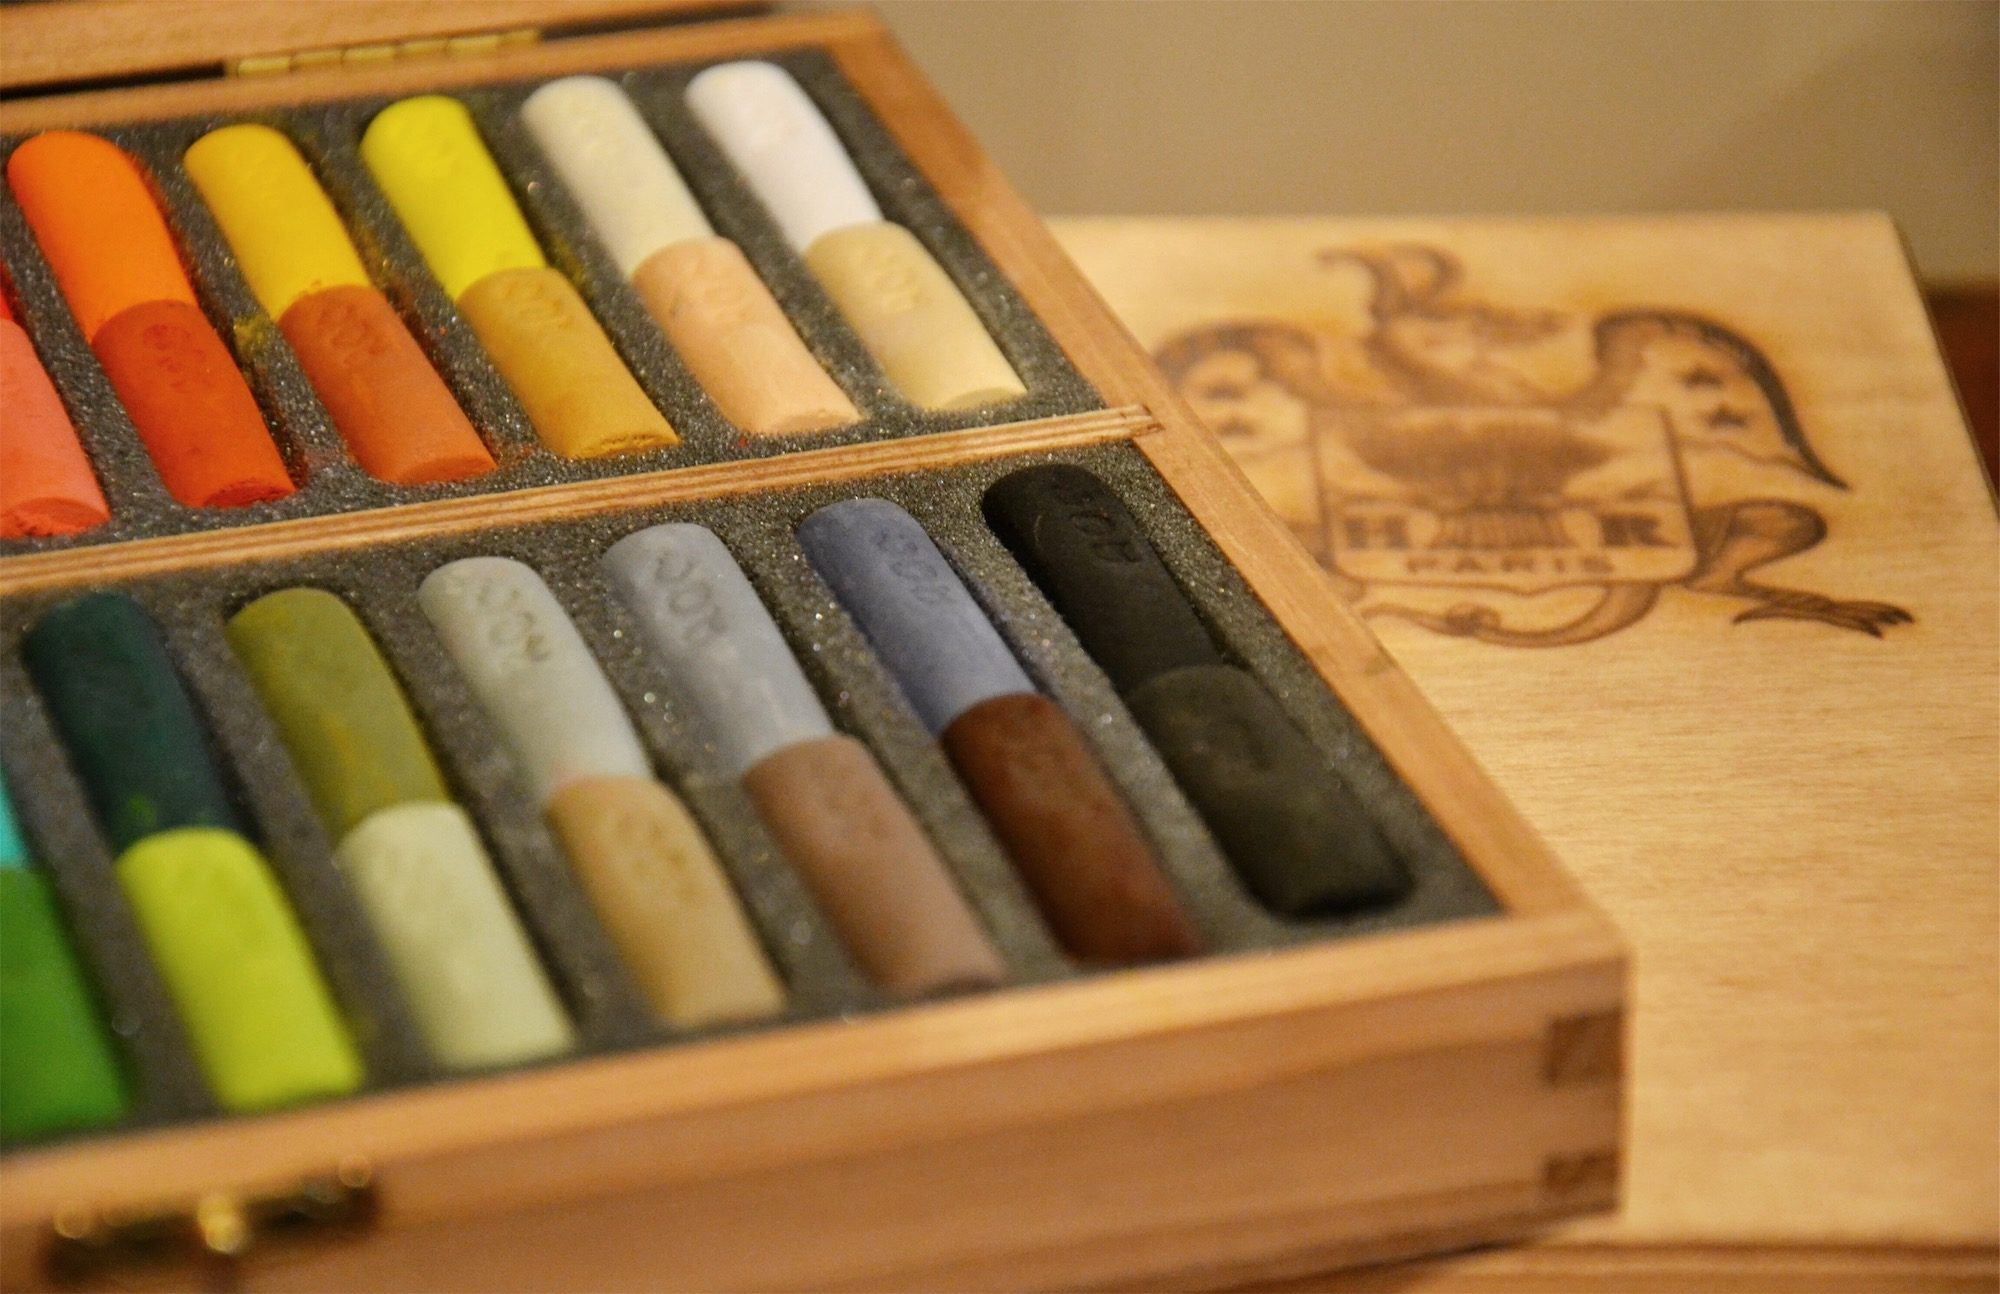 The Maison du Pastel art store in Paris sells the most beautiful colors of pastels all traditionally made, like this open wooden box of yellows, grays and oranges.